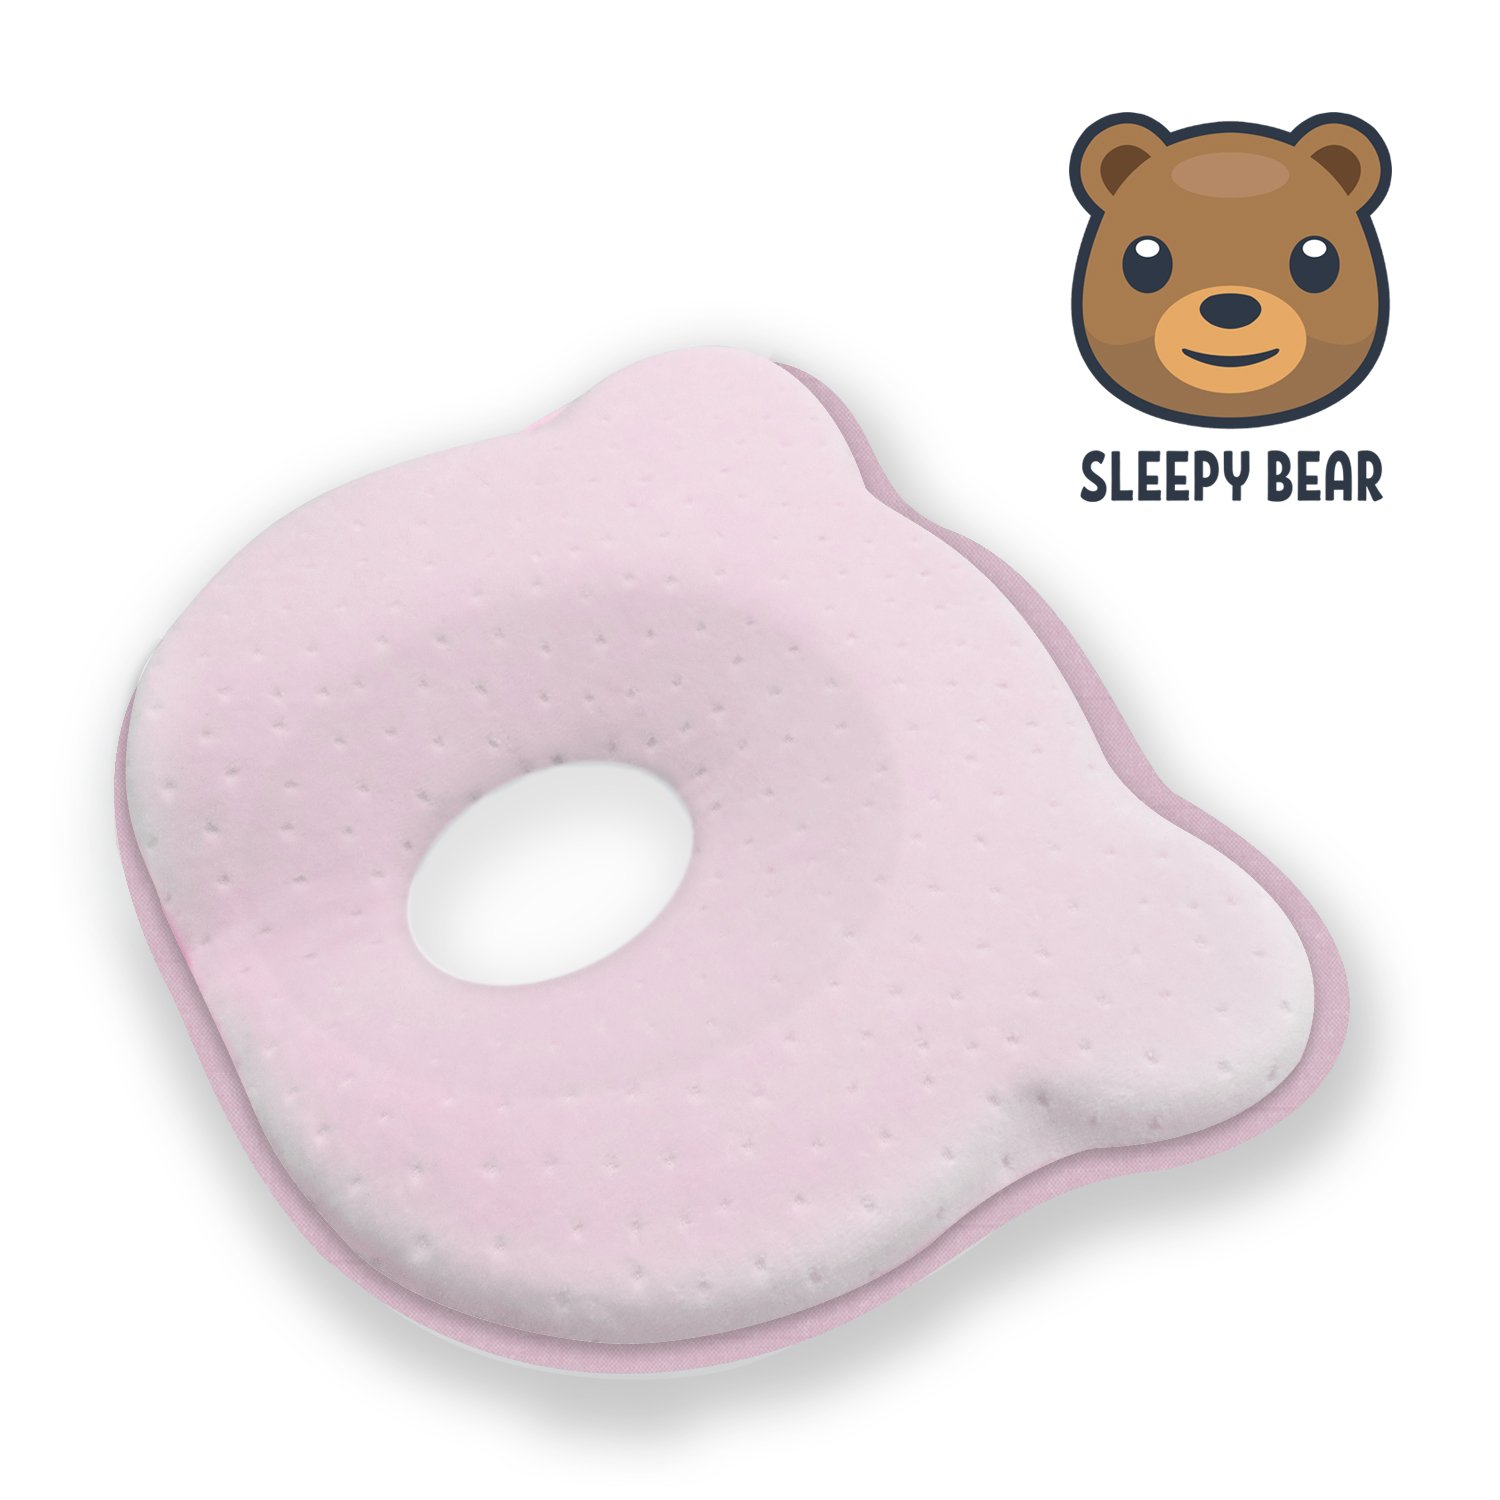 Baby Head Shaping Memory Foam Pillow   Prevent Newborn Infant Plagiocephaly Flat Head Syndrome   Super Soft, Comfortable & Supportive (Pink)